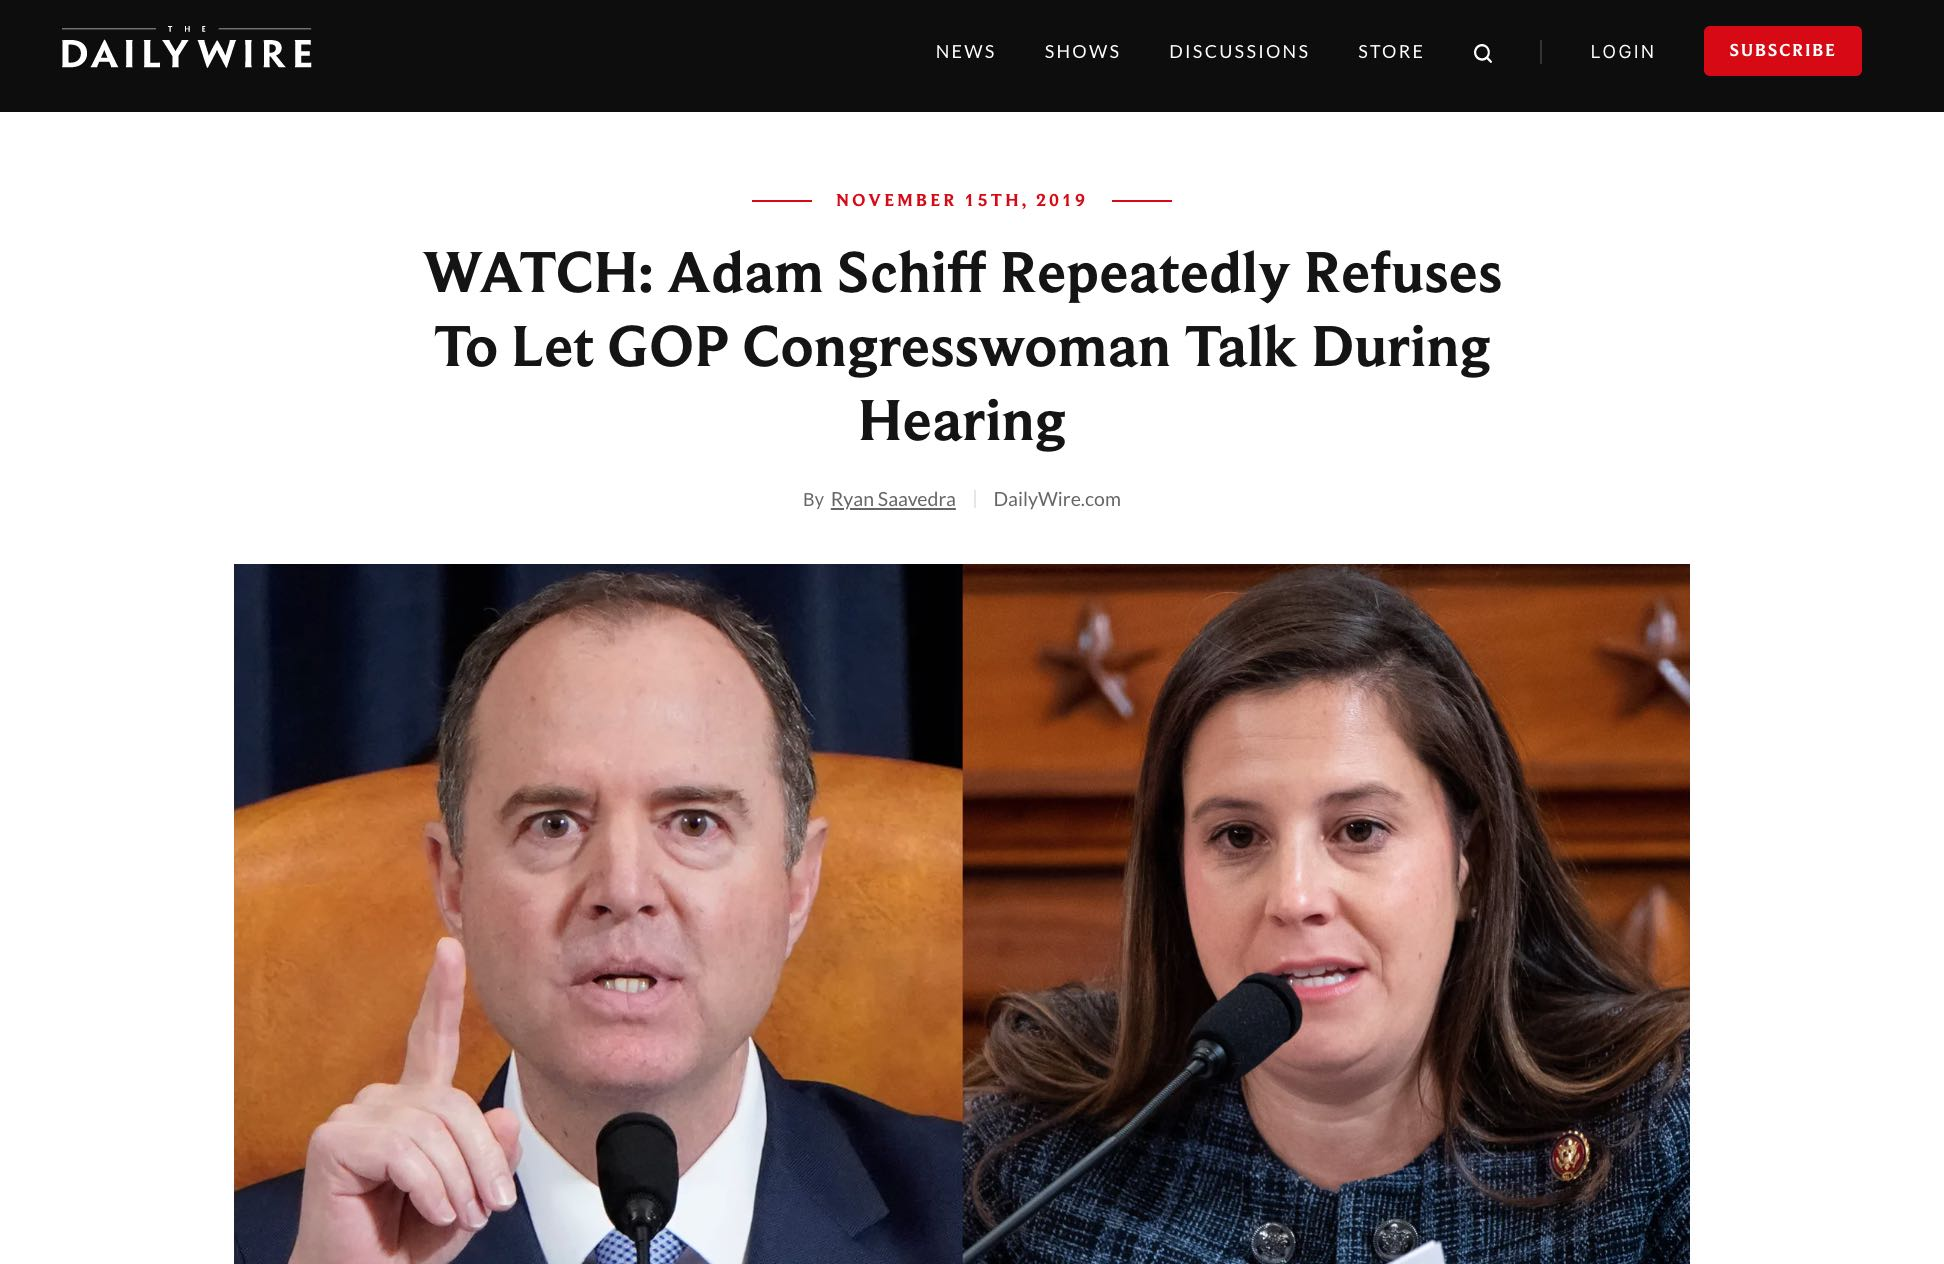 The Headline is: Adam Schiff Repeatedly Refuses To Let GOP Congresswoman Talk During Hearing